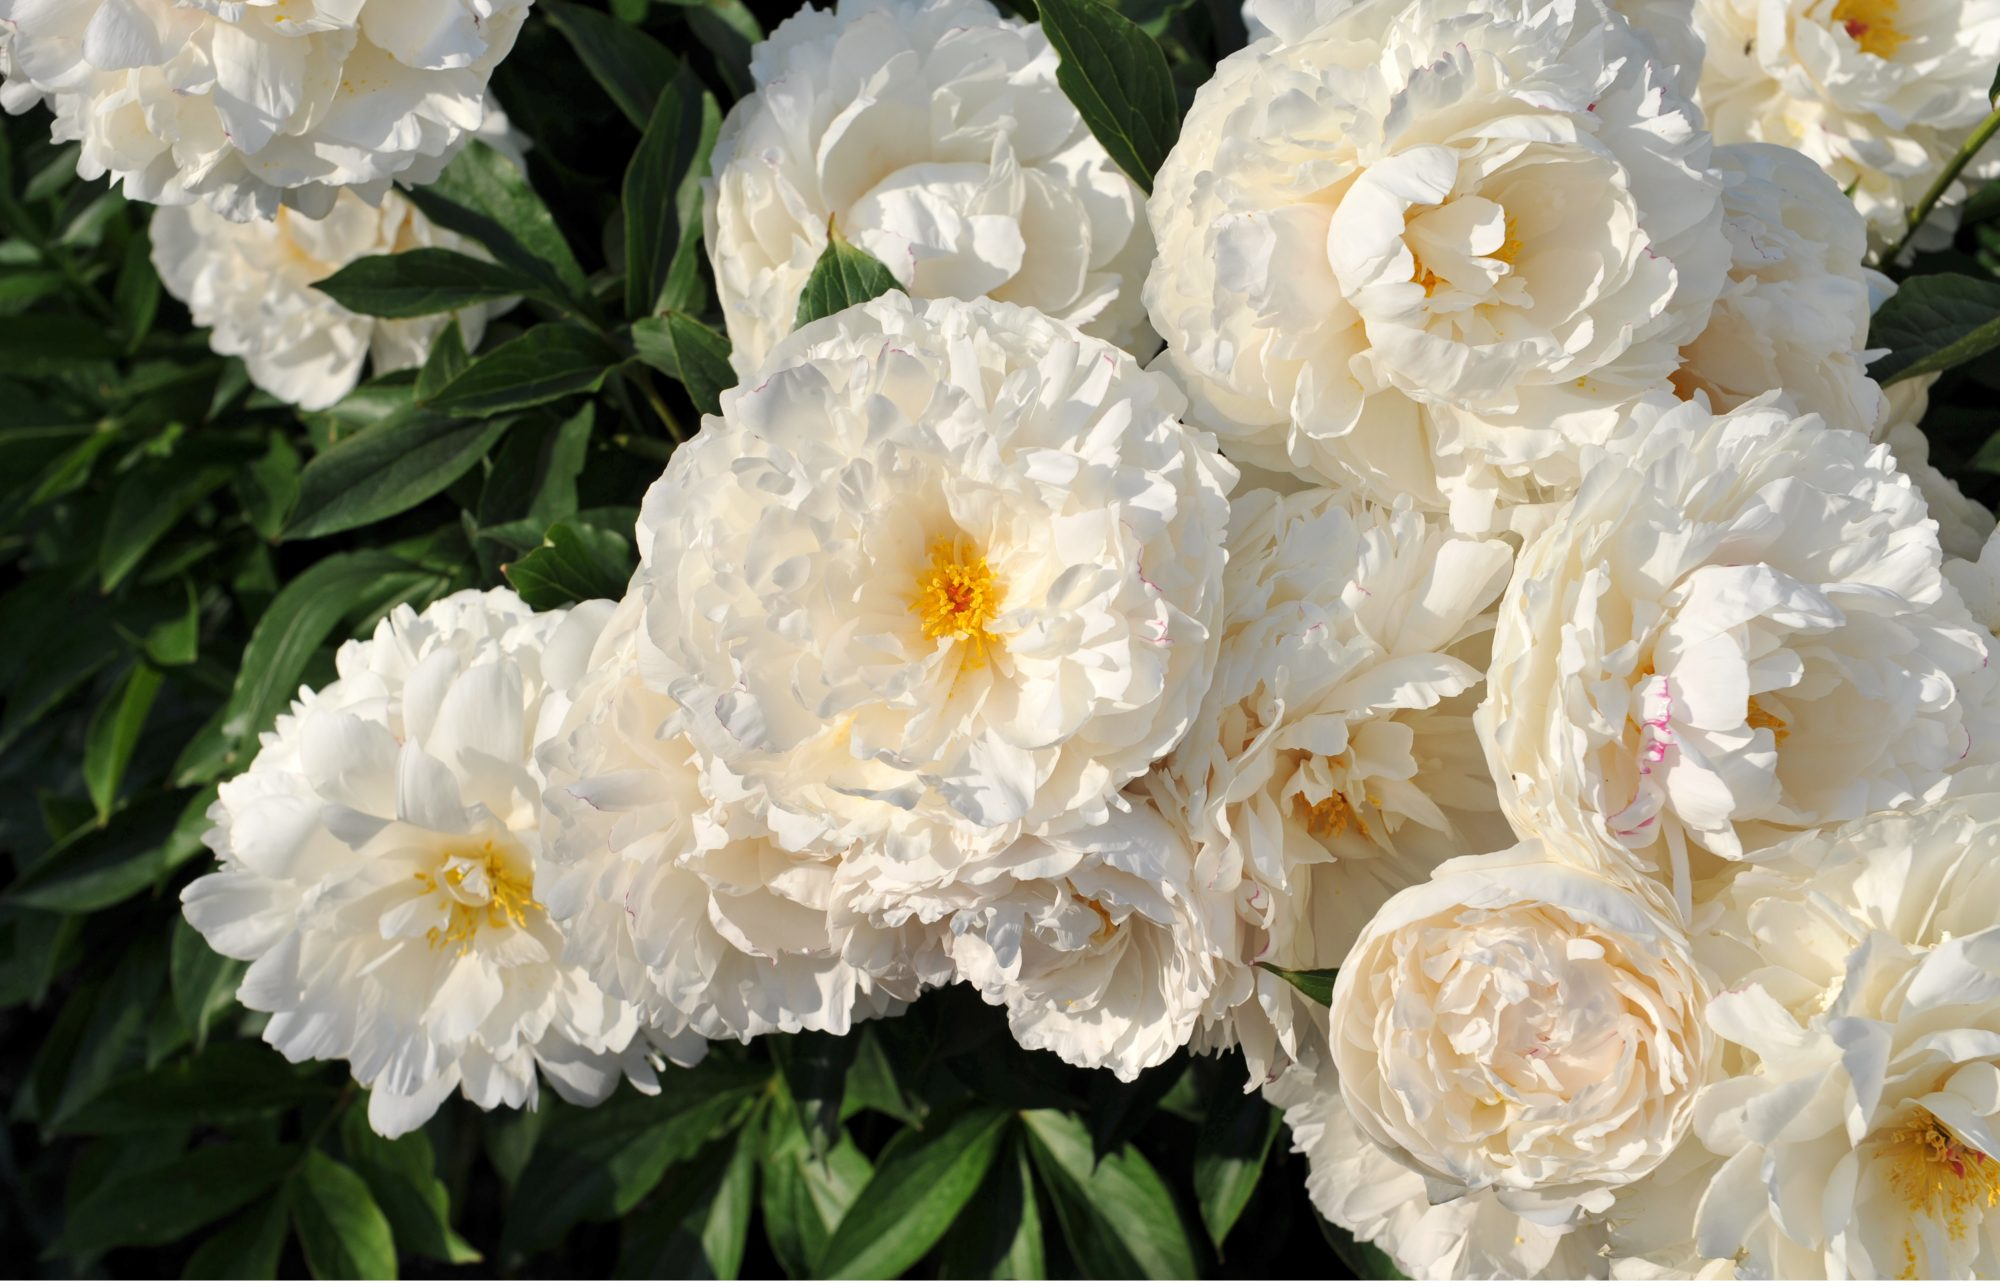 Peonies Last Forever Species to Buy